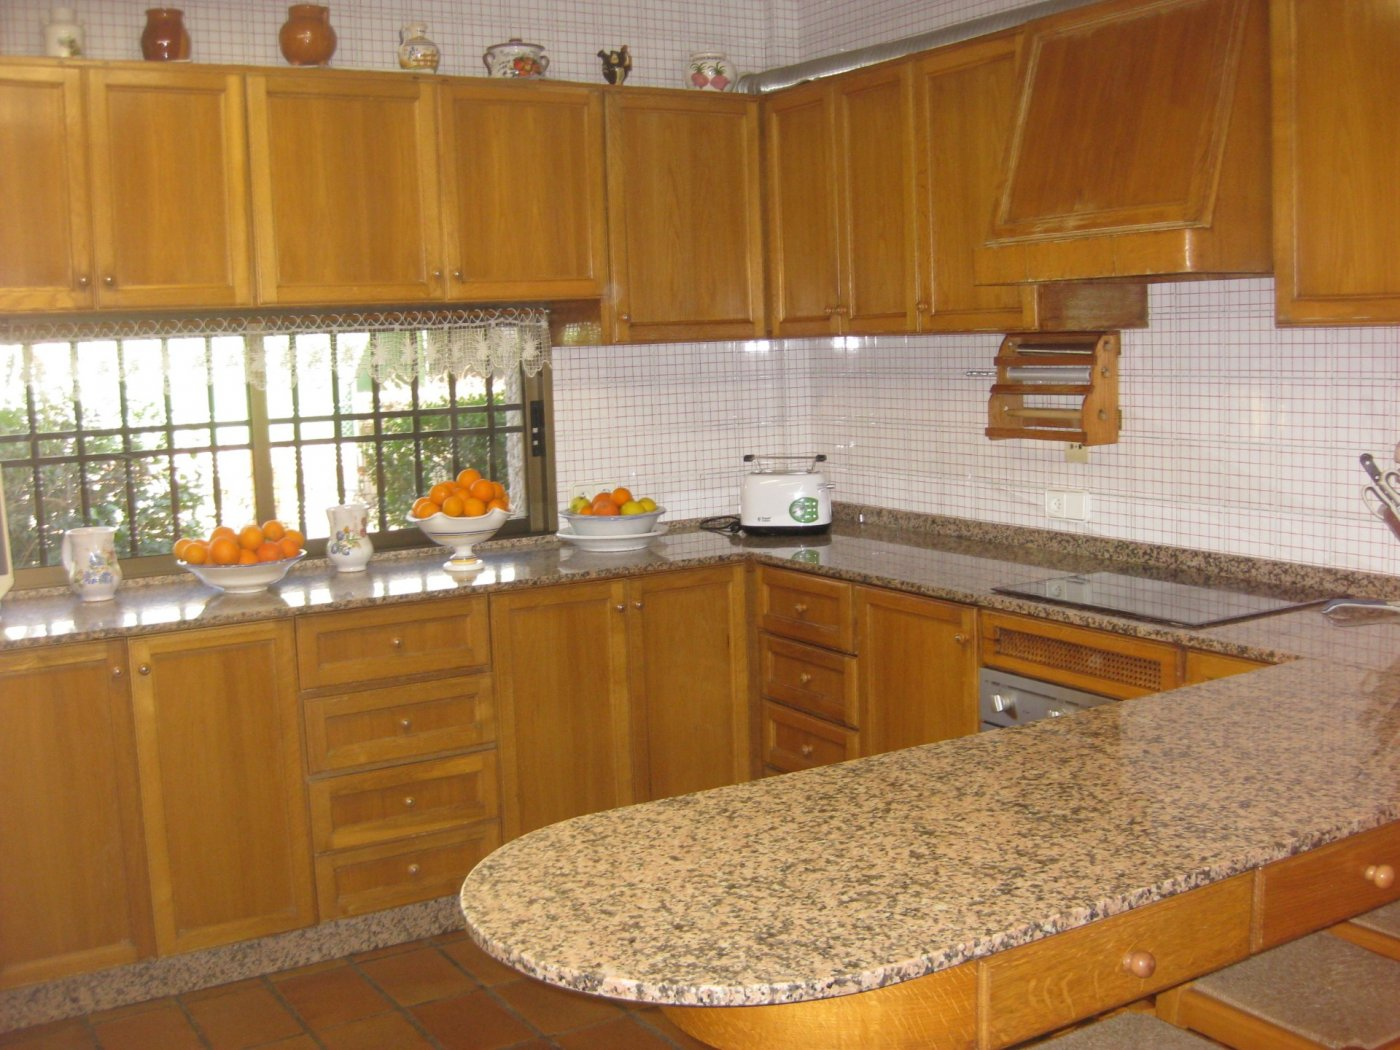 Gallery Image 5 of Casa con terreno For Sale in Espinardo, Murcia With Pool